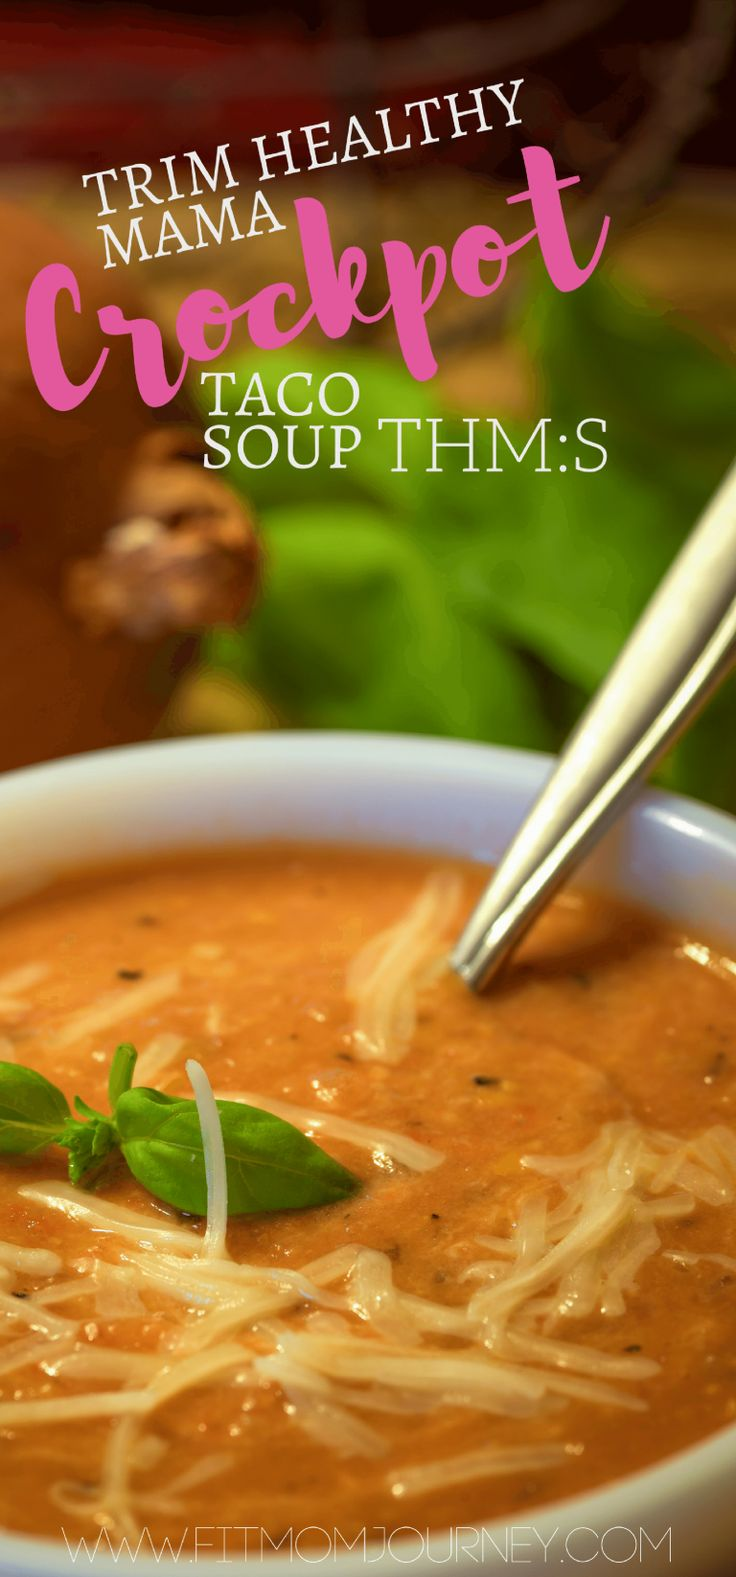 This Trim Healthy Mama Crockpot Taco soup is the perfect THM:S comfort food. Cheesy, spicy, and packed with protein this recipe is a winner!